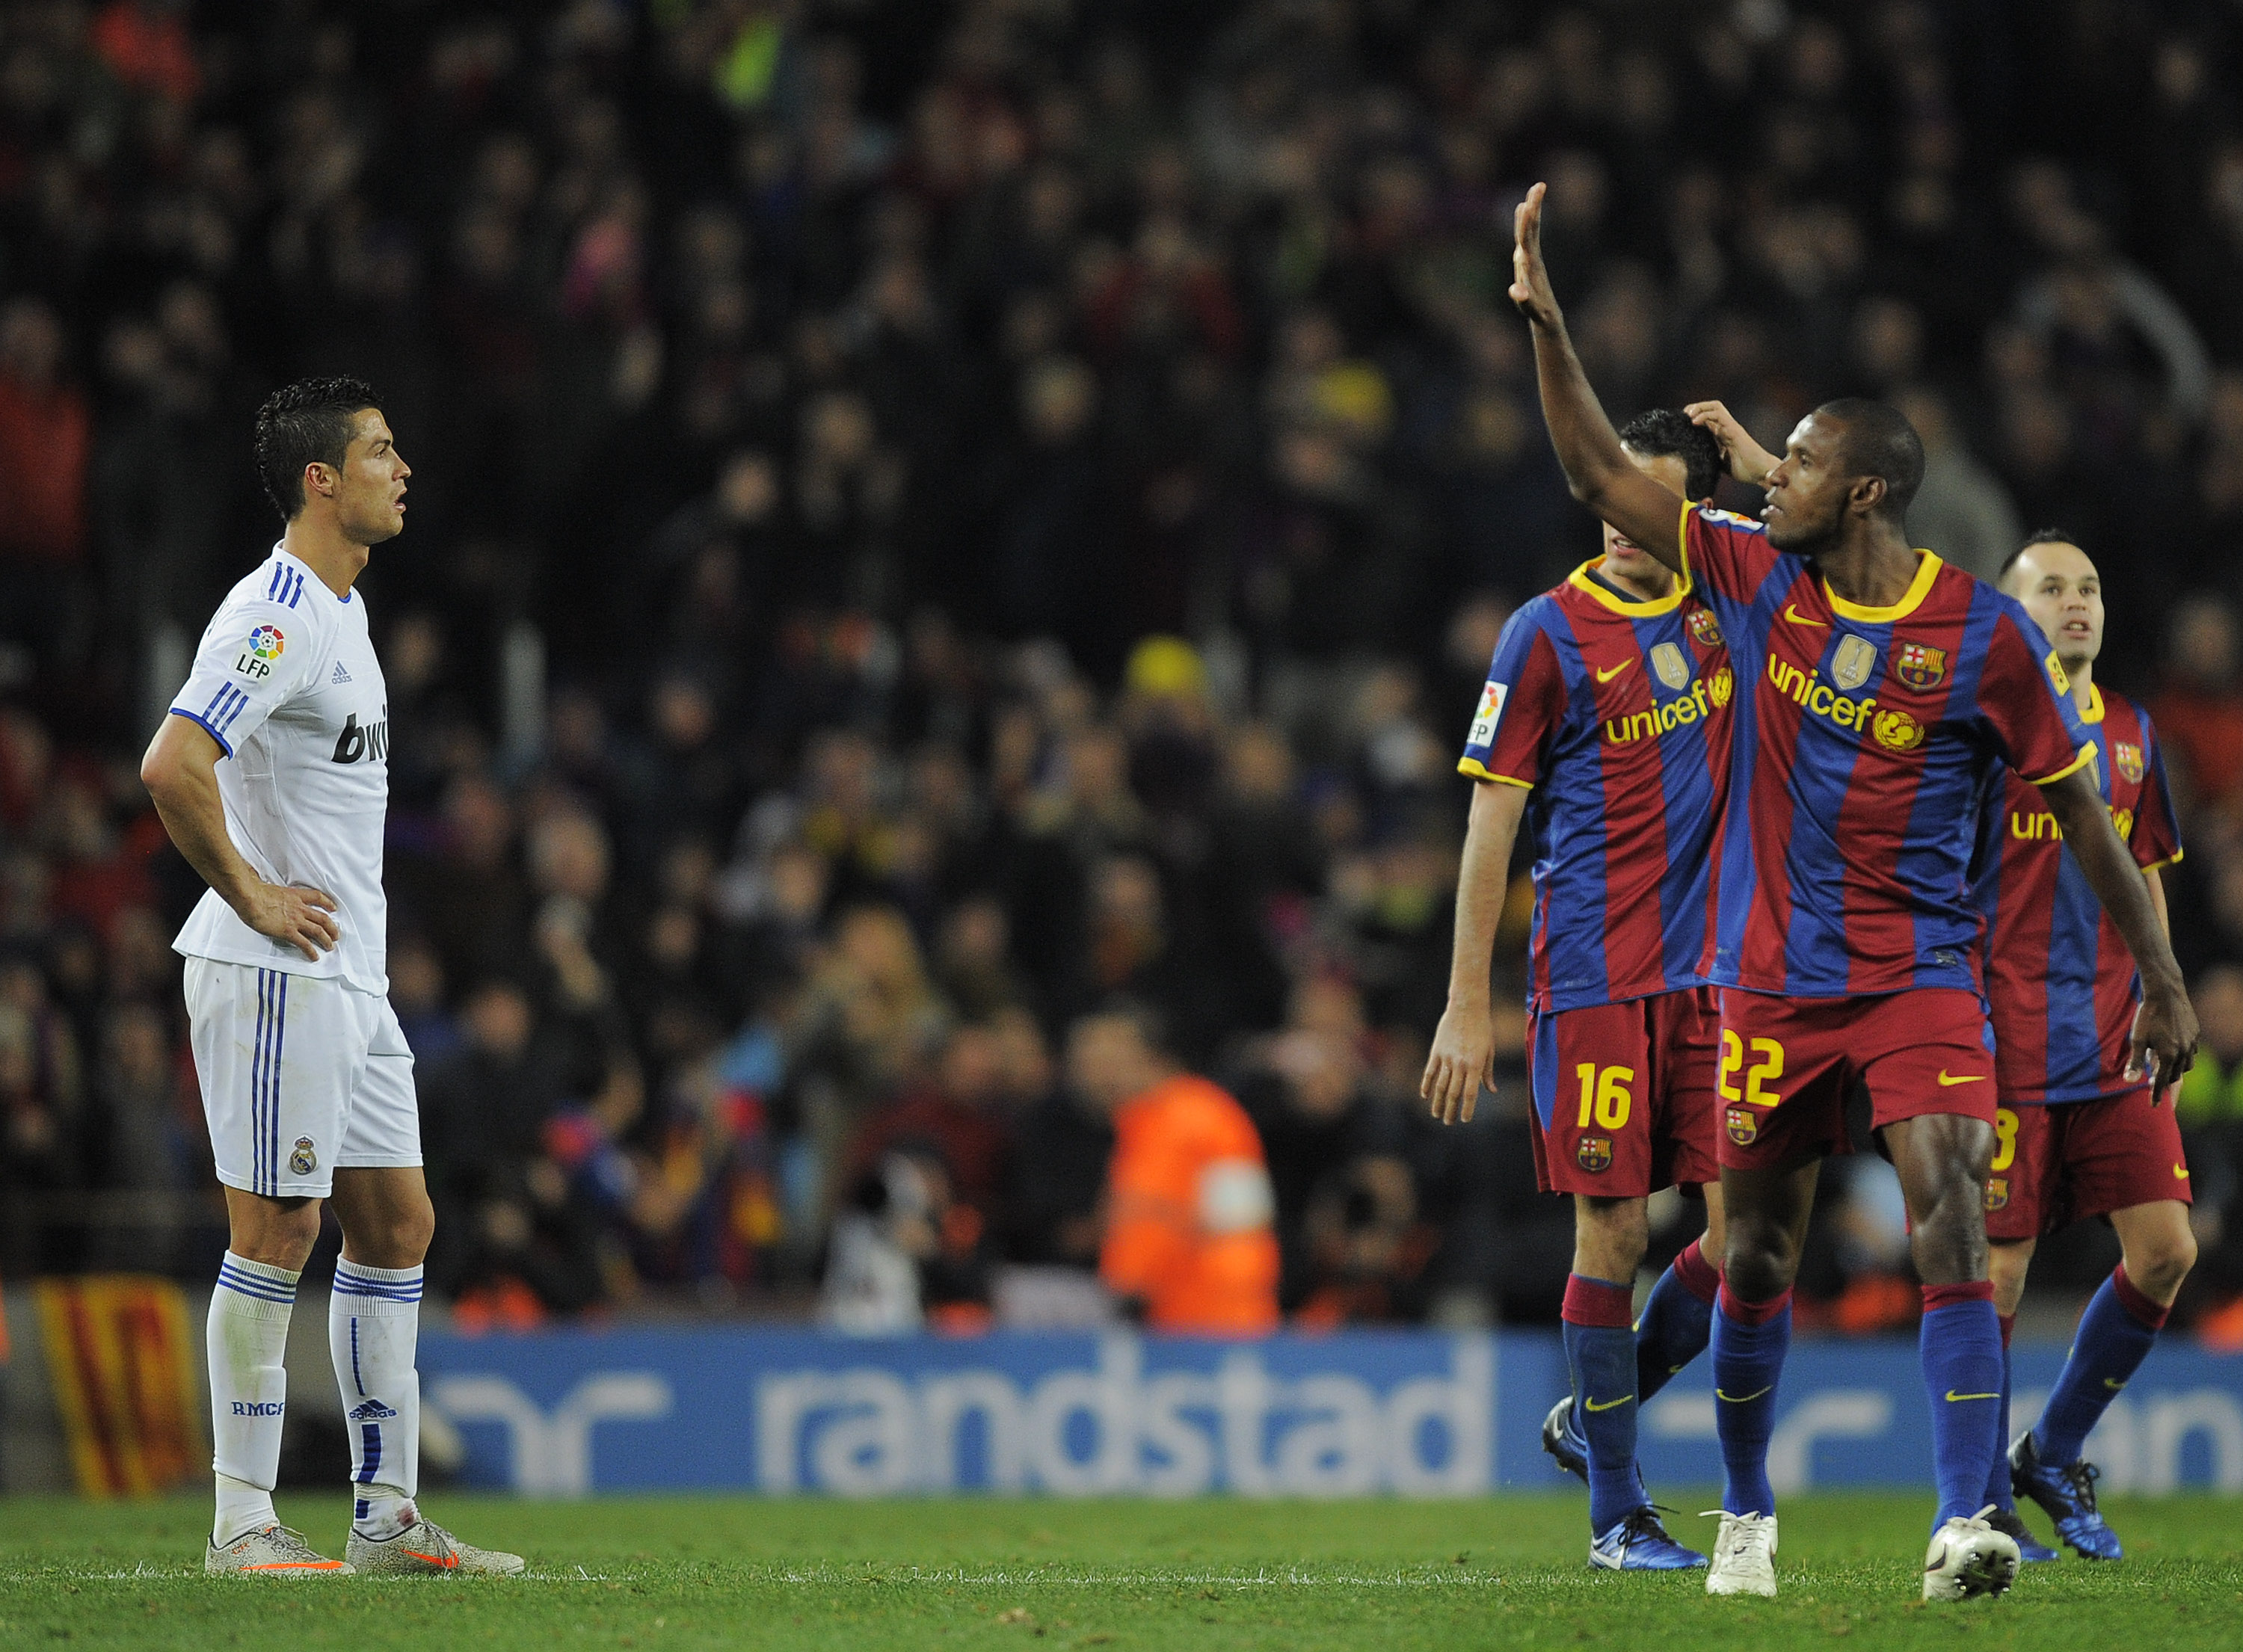 BARCELONA, SPAIN - NOVEMBER 29:  Cristiano Ronaldo of Real Madrid (L) looks on as Eric Abidal (2ndR) of Barcelona gestures after Barcelona  scored five goals againts Real Madrid, during the La Liga match between Barcelona and Real Madrid at the Camp Nou S